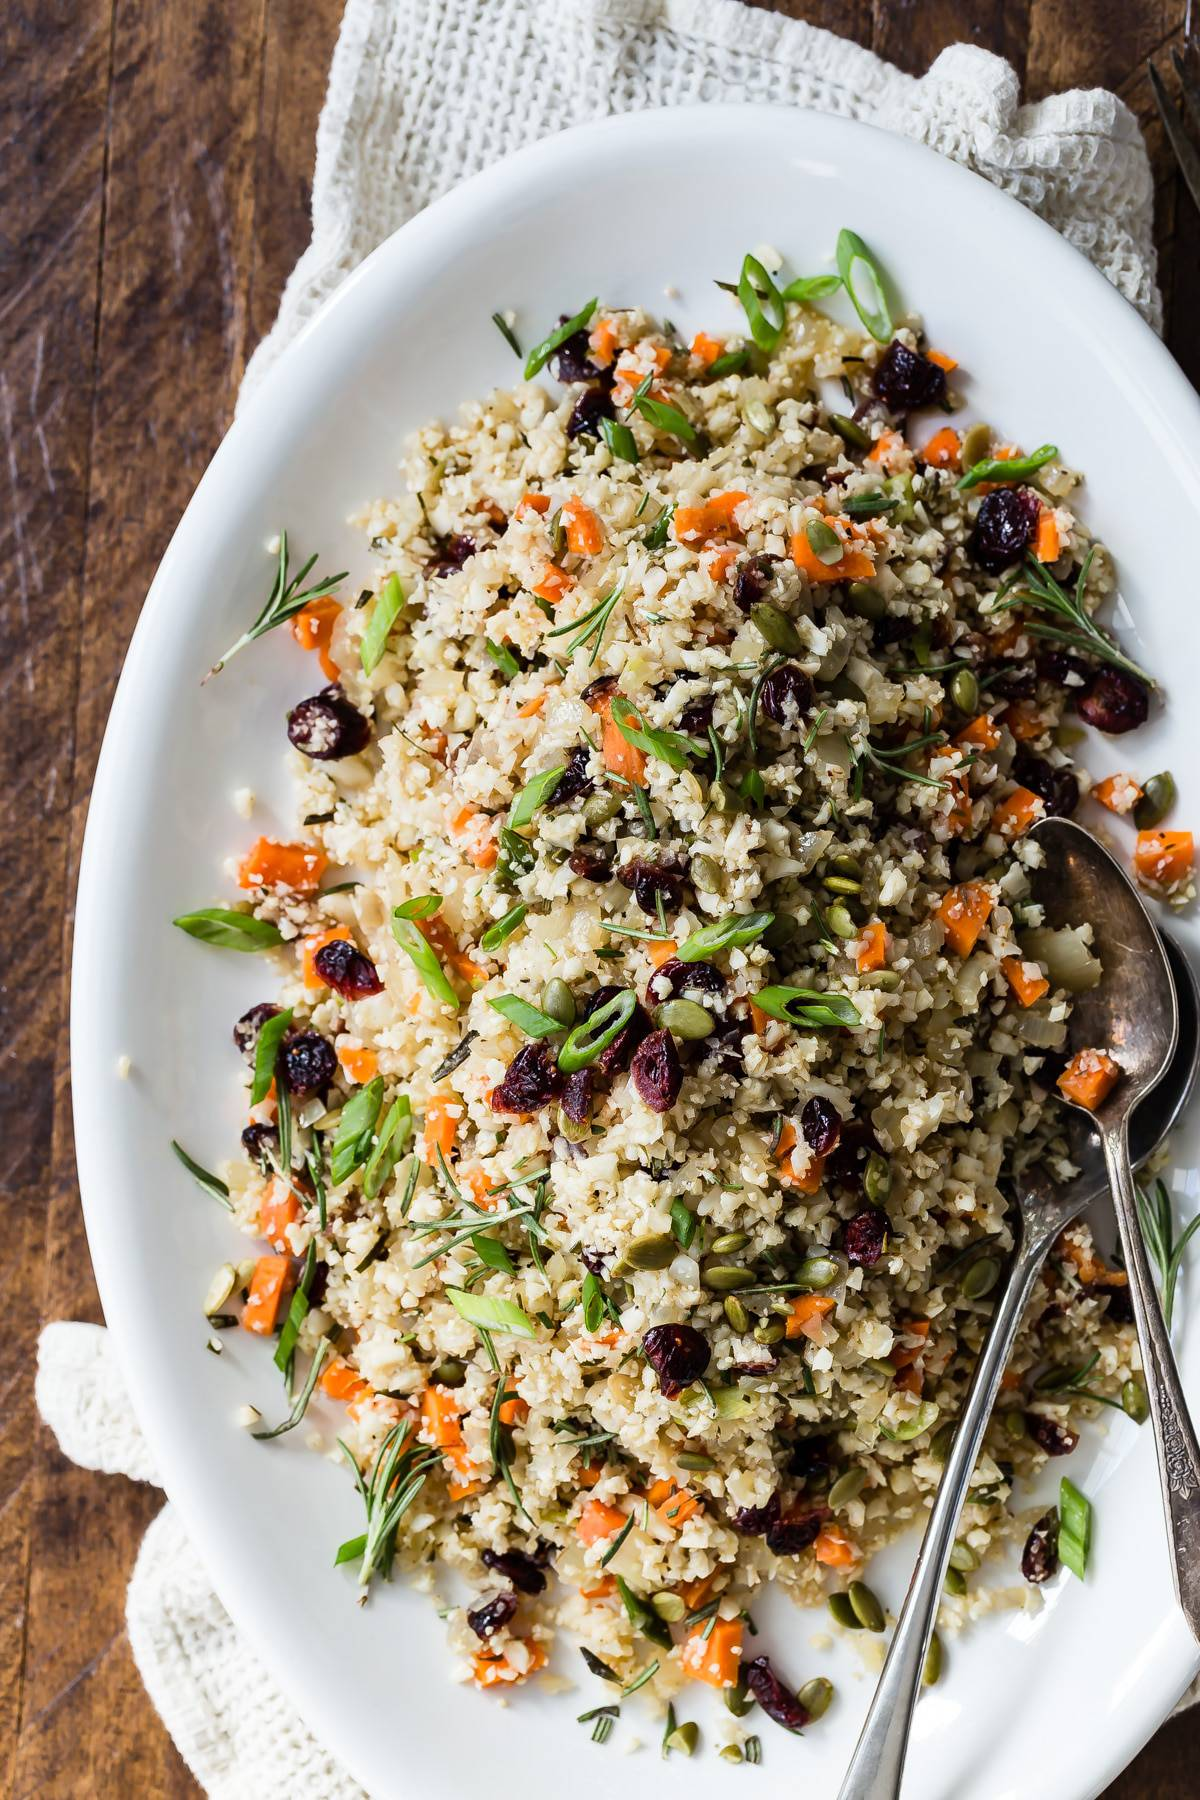 Tasty vegetarian side dish made with cauliflower rice, cranberries and pumpkin seeds! Take this to your Thanksgiving or friends giving celebration! #thanksgiving #vegetarian